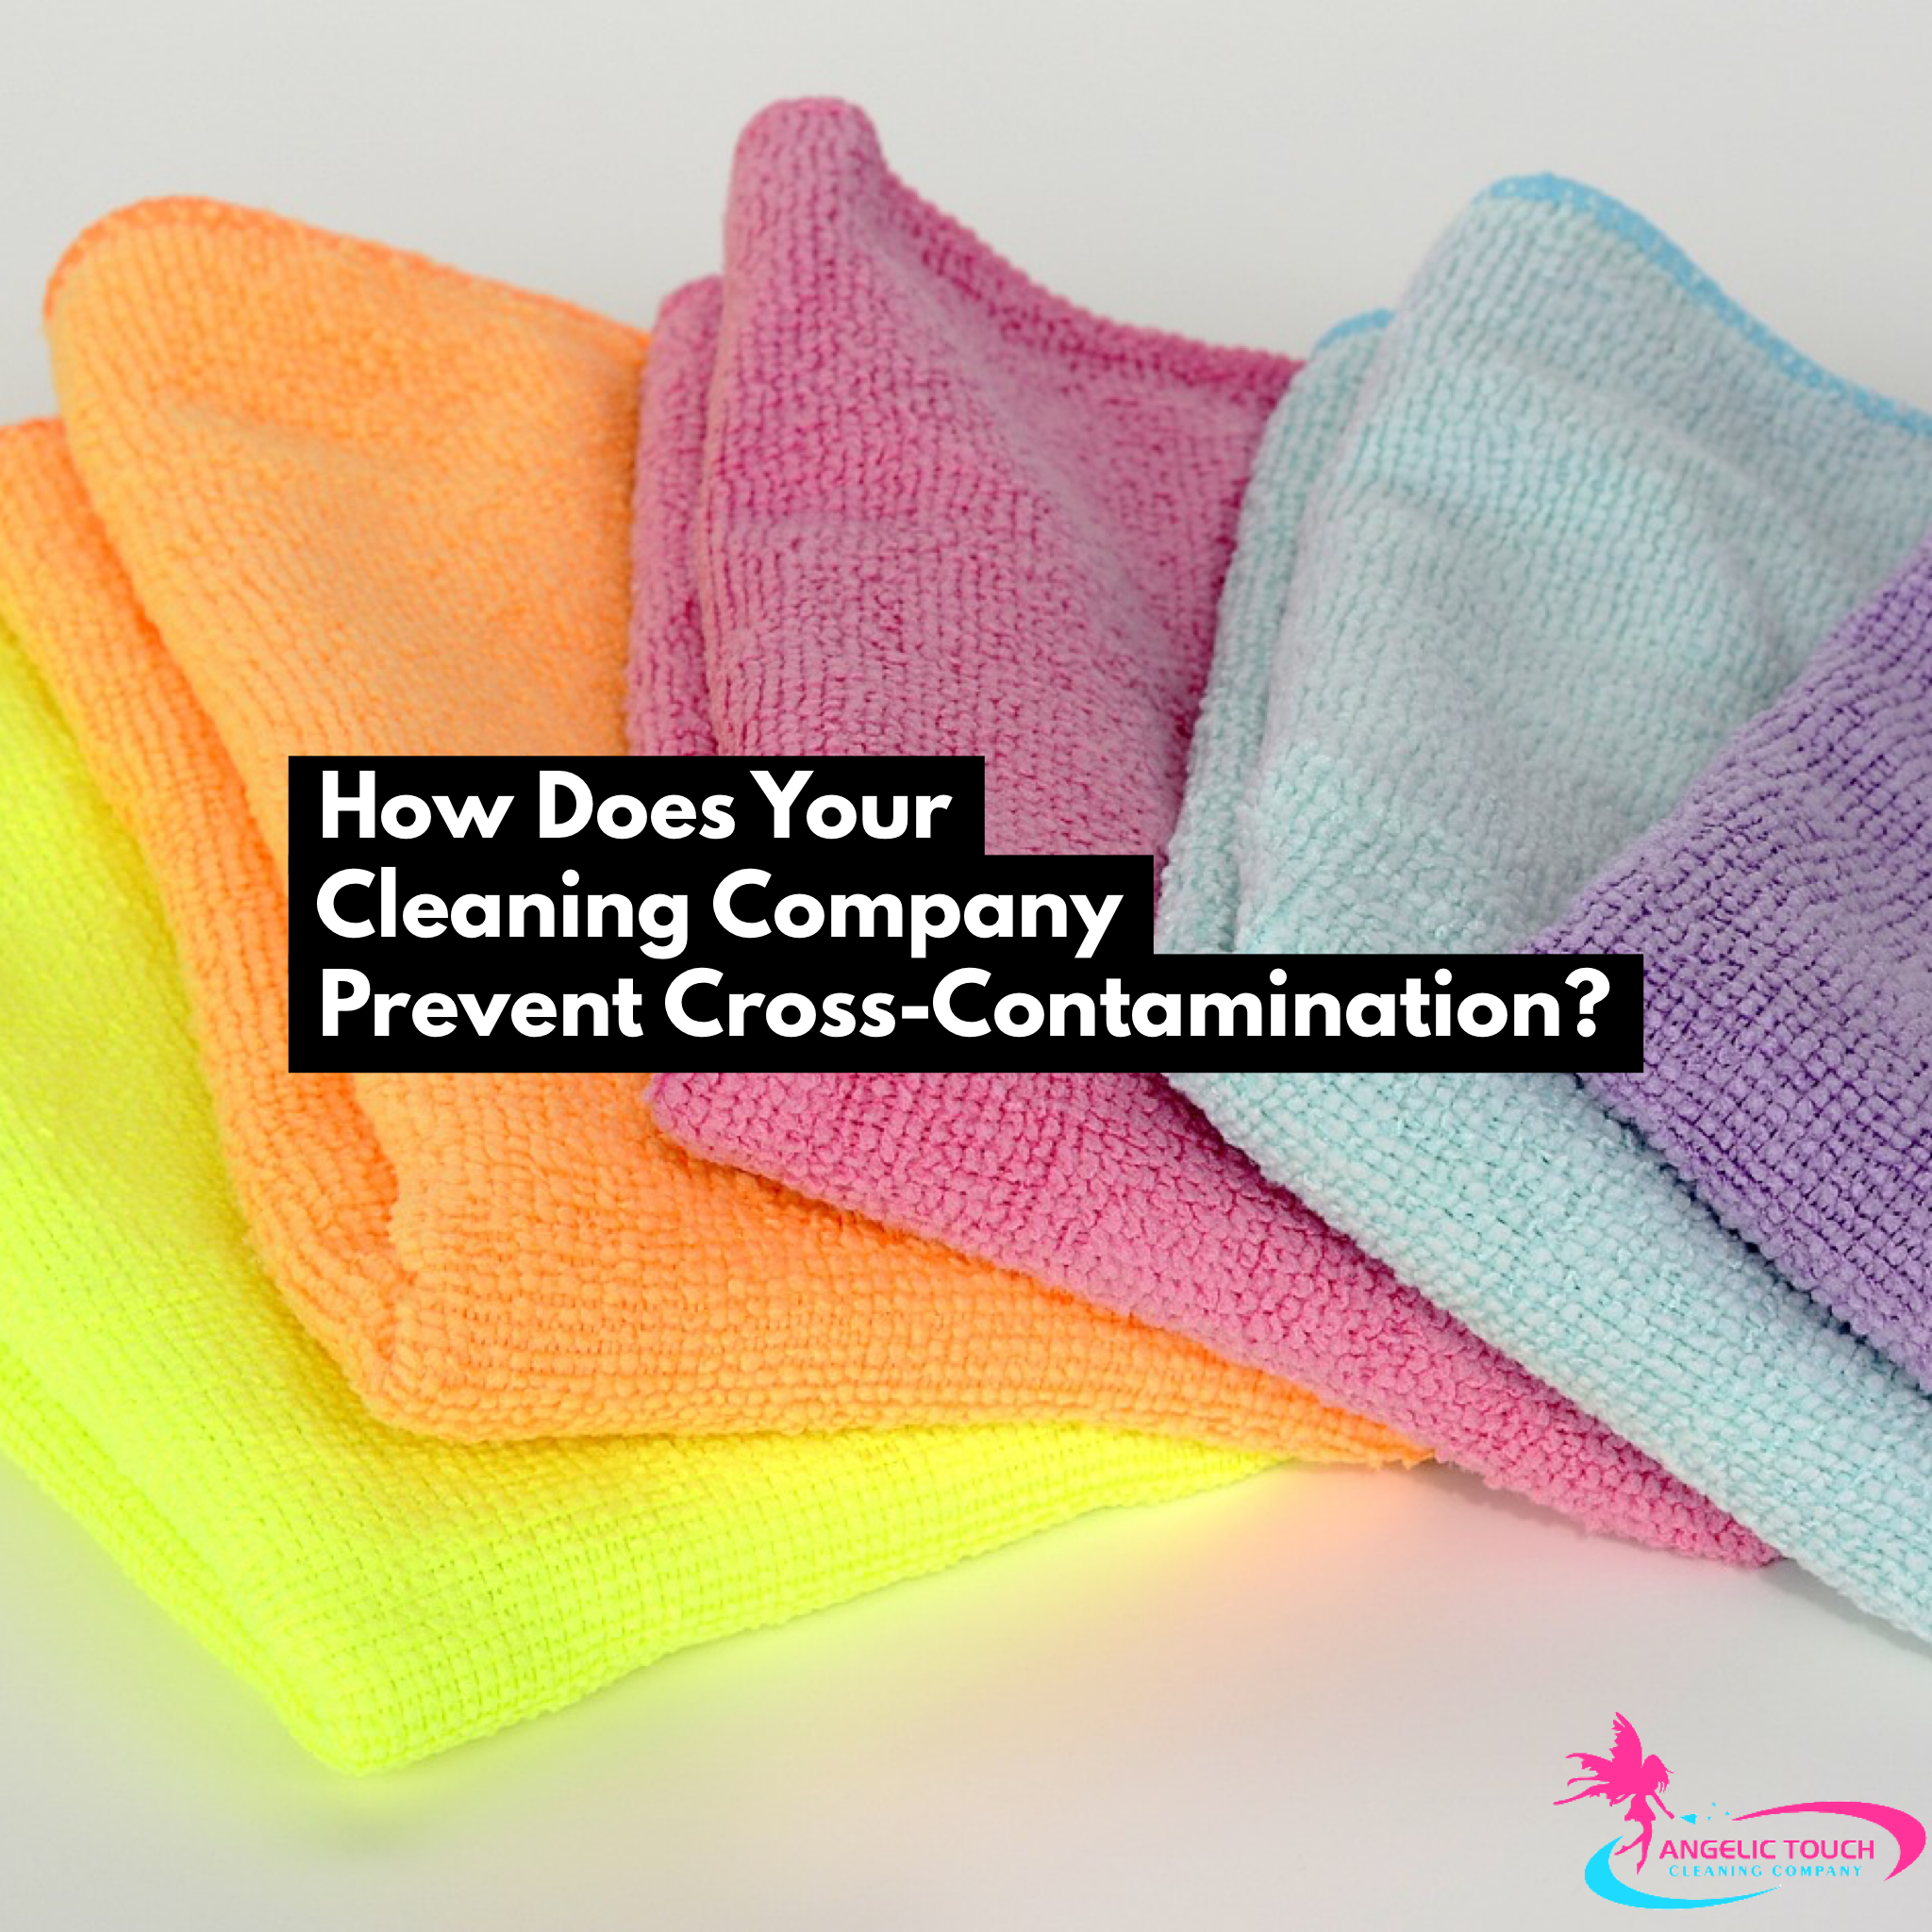 Why We Use a Color-Coded Cleaning System